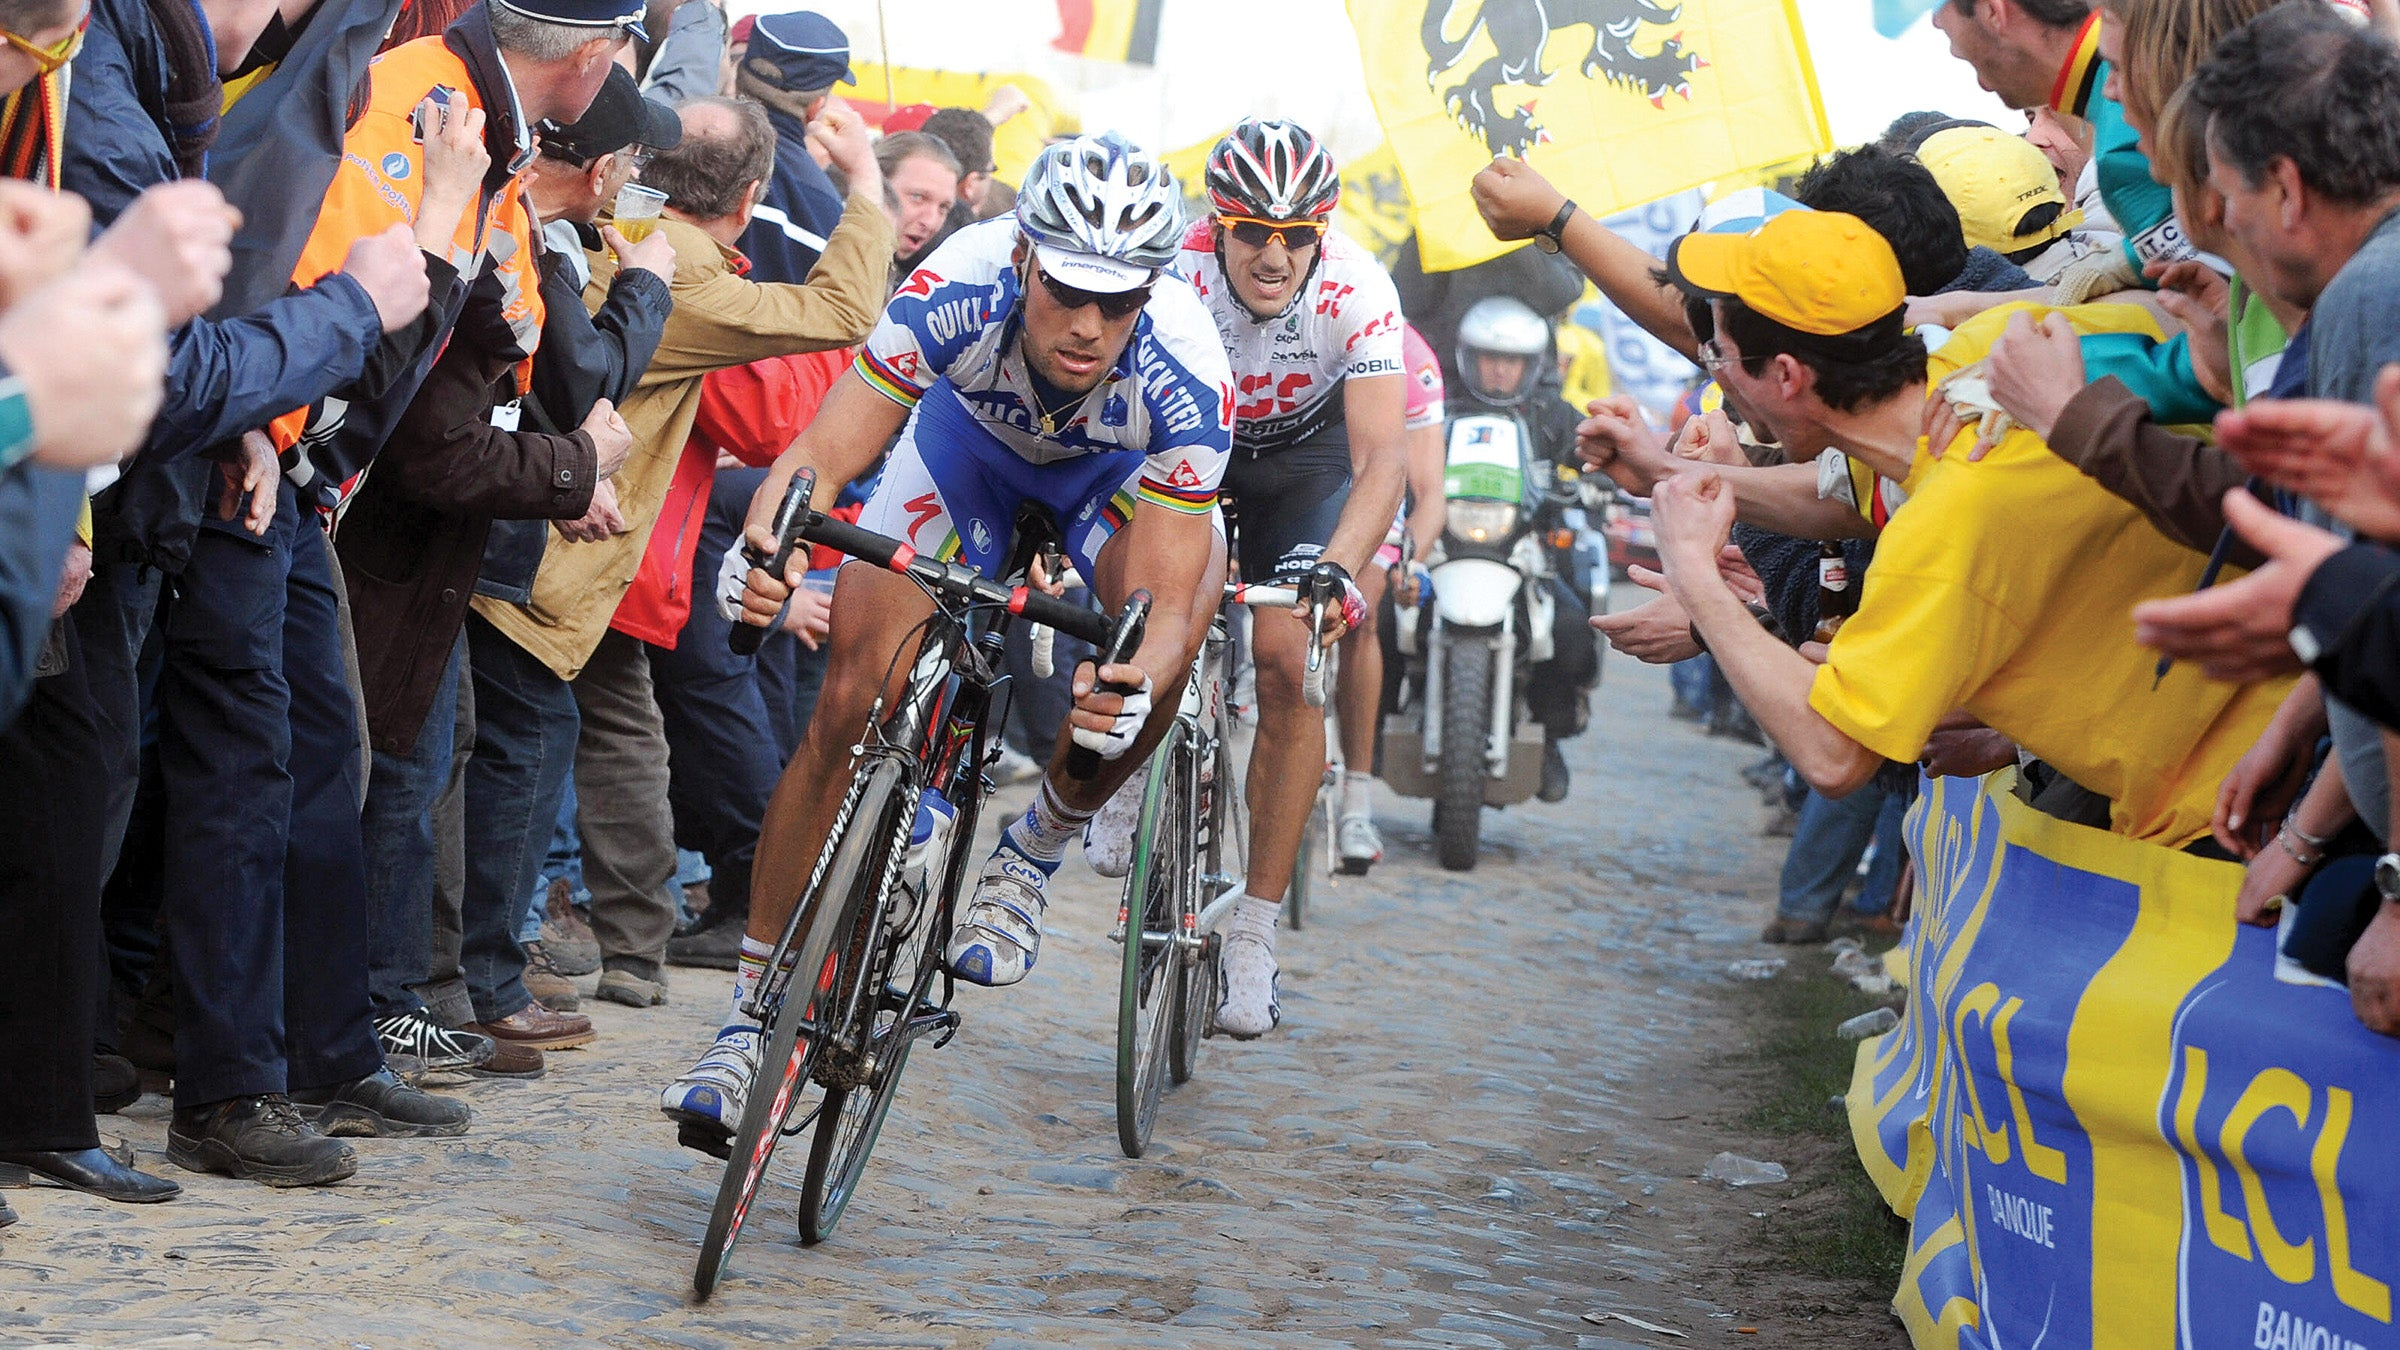 Tom Boonen vs. Fabian Cancellara: Rivalry for the ages – VeloNews.com